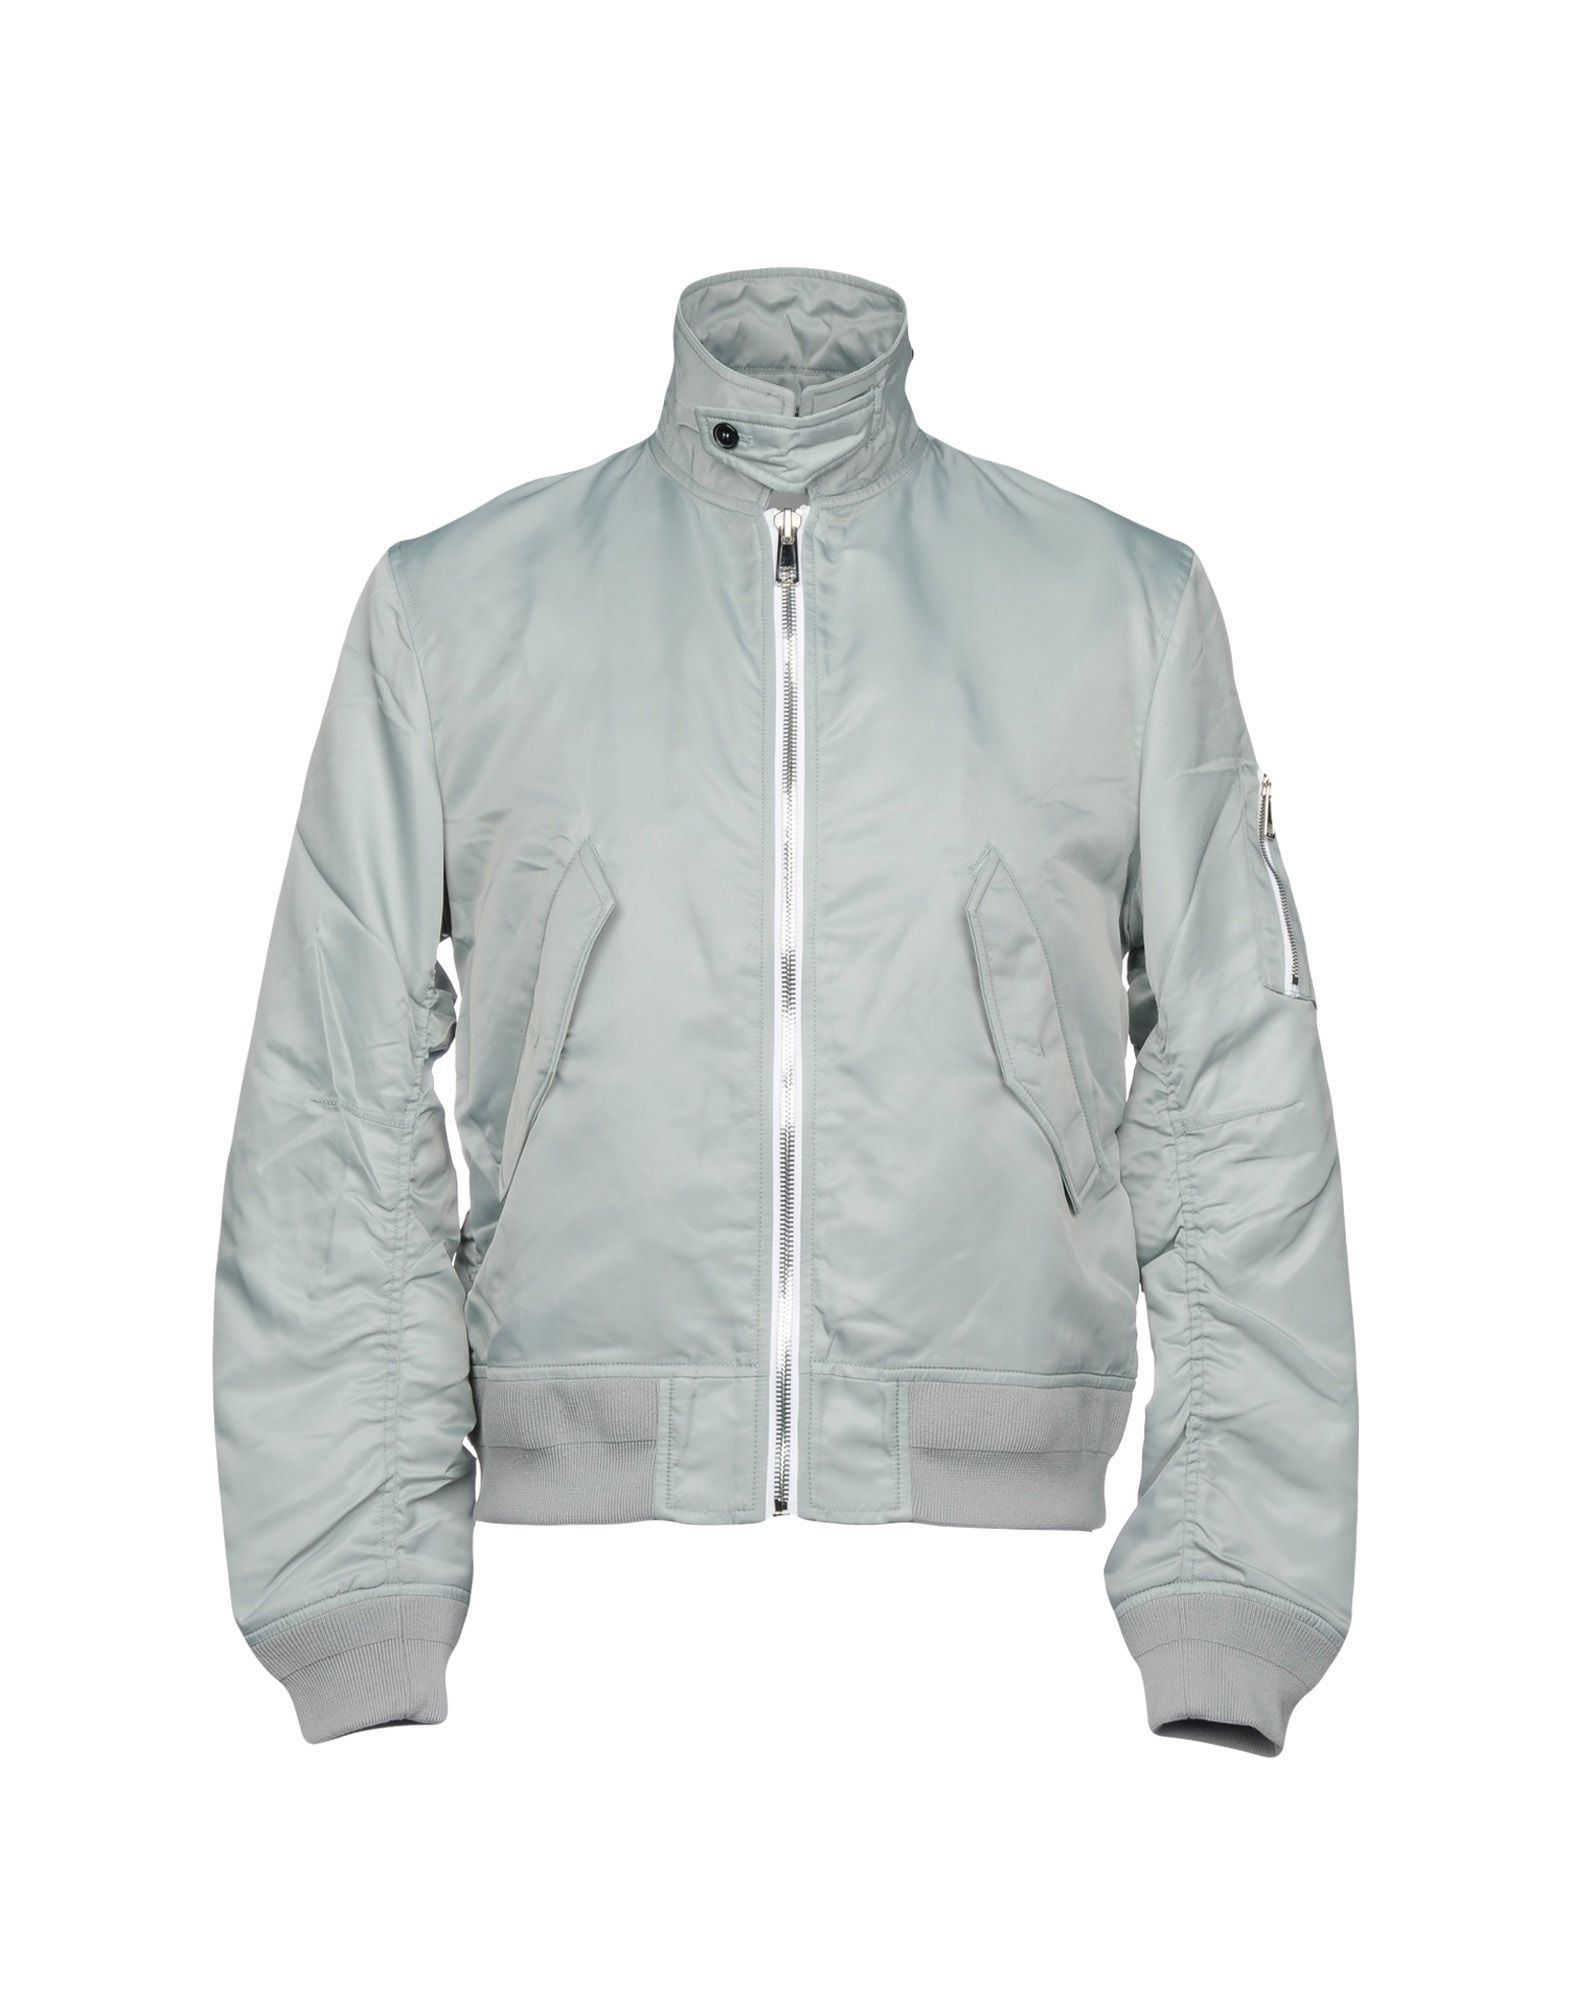 PLAC Bomber in Light Grey